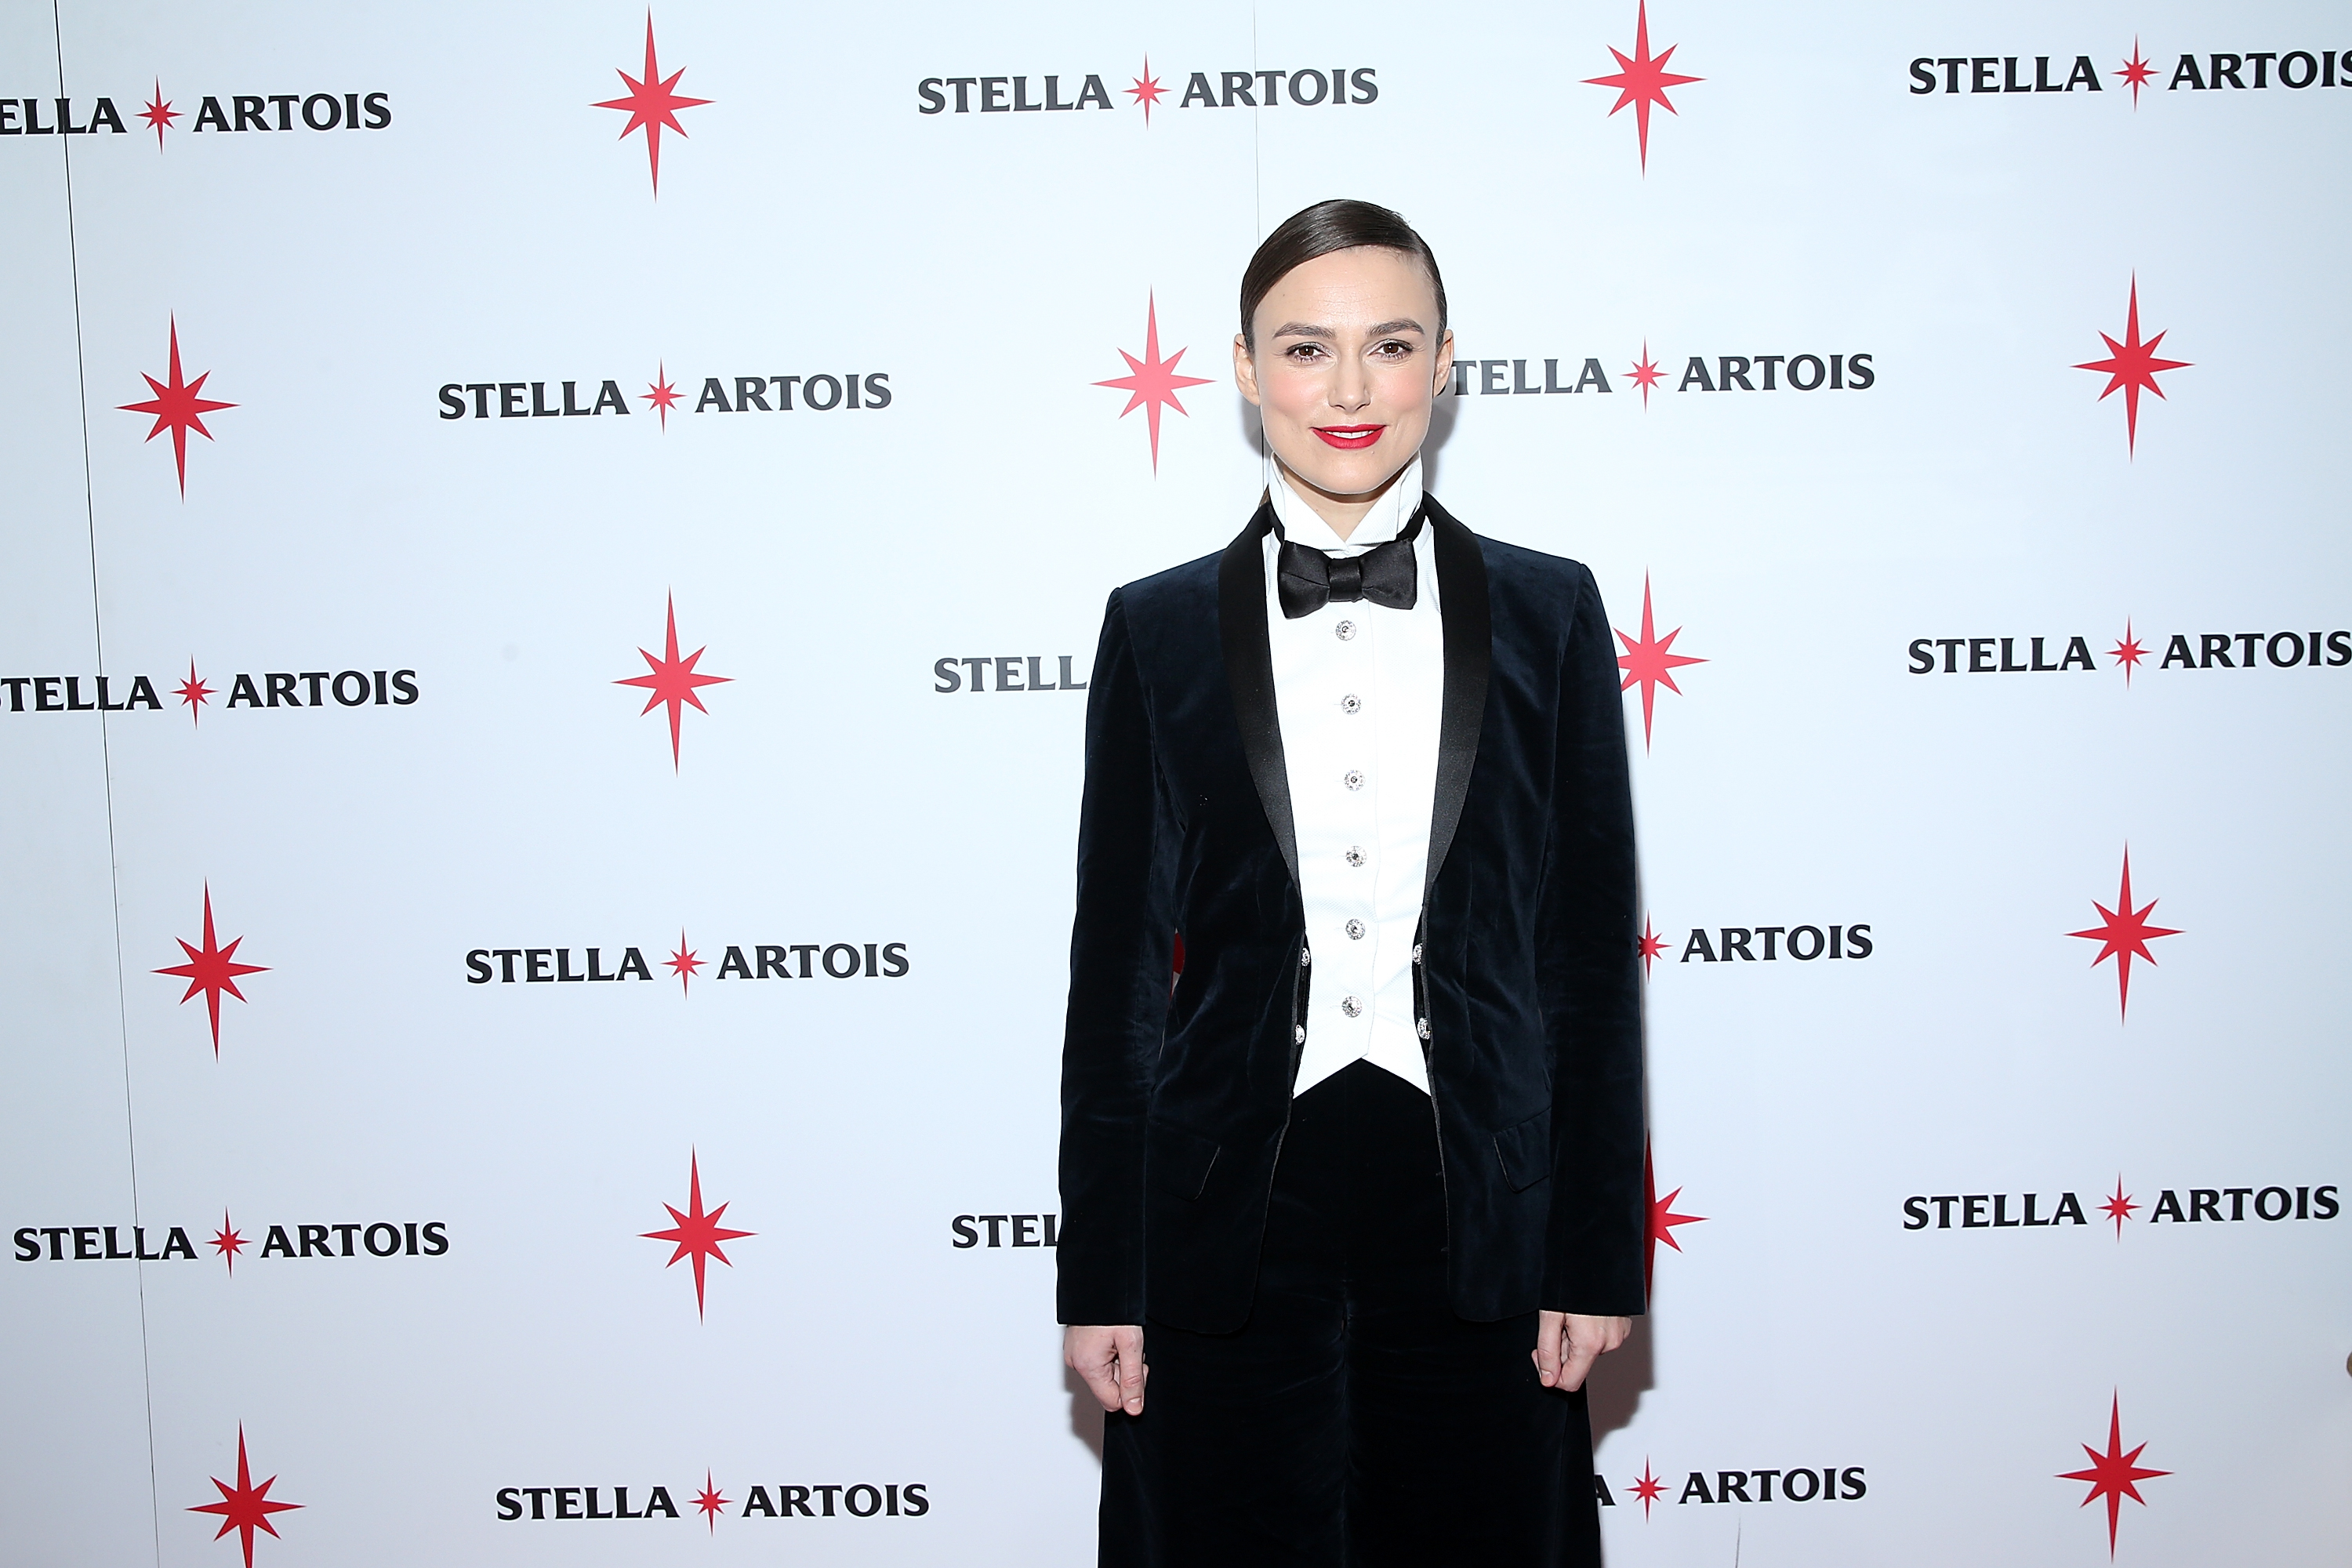 Keira Knightley at the Colette cast party in Cafe Artois during the Sundance Film Festival in Park City, Utah on Saturday, January 20, 2018.